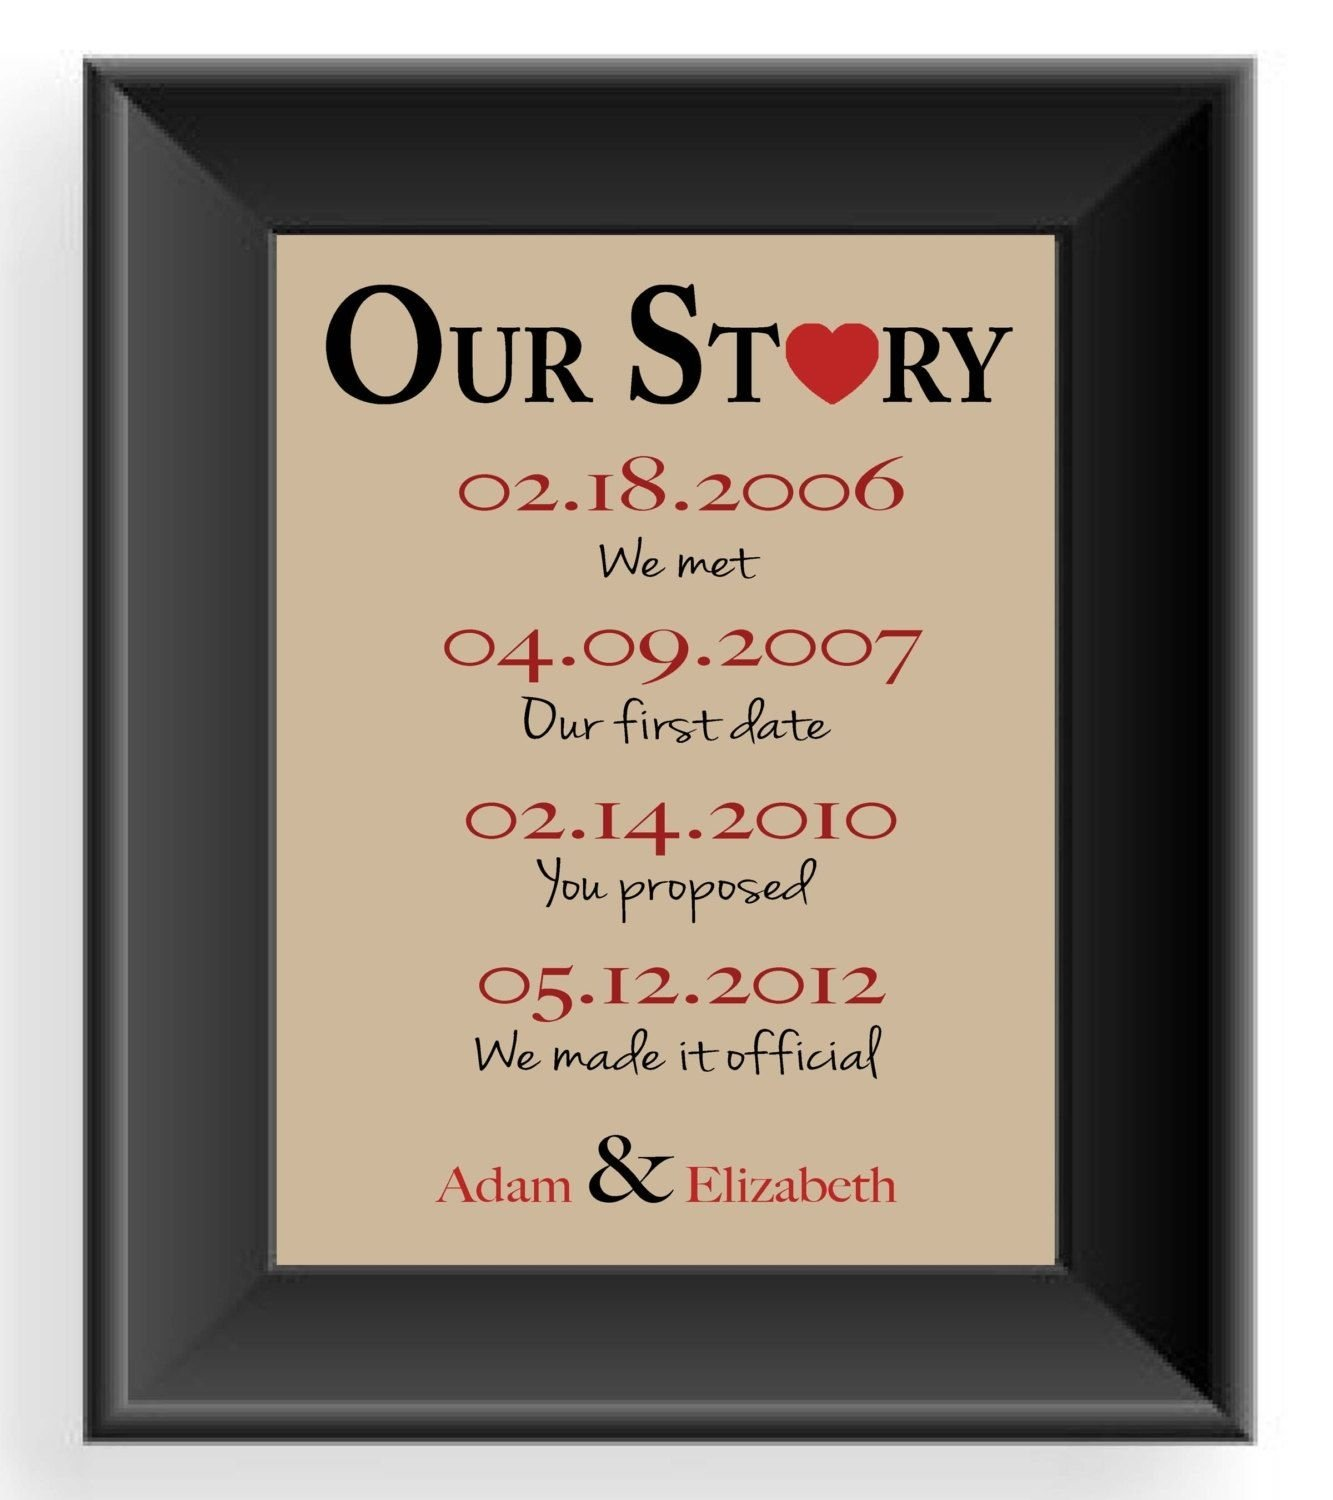 10 Elegant First Wedding Anniversary Gift Ideas For Wife valentines day gift important dates wedding gift for couple 32